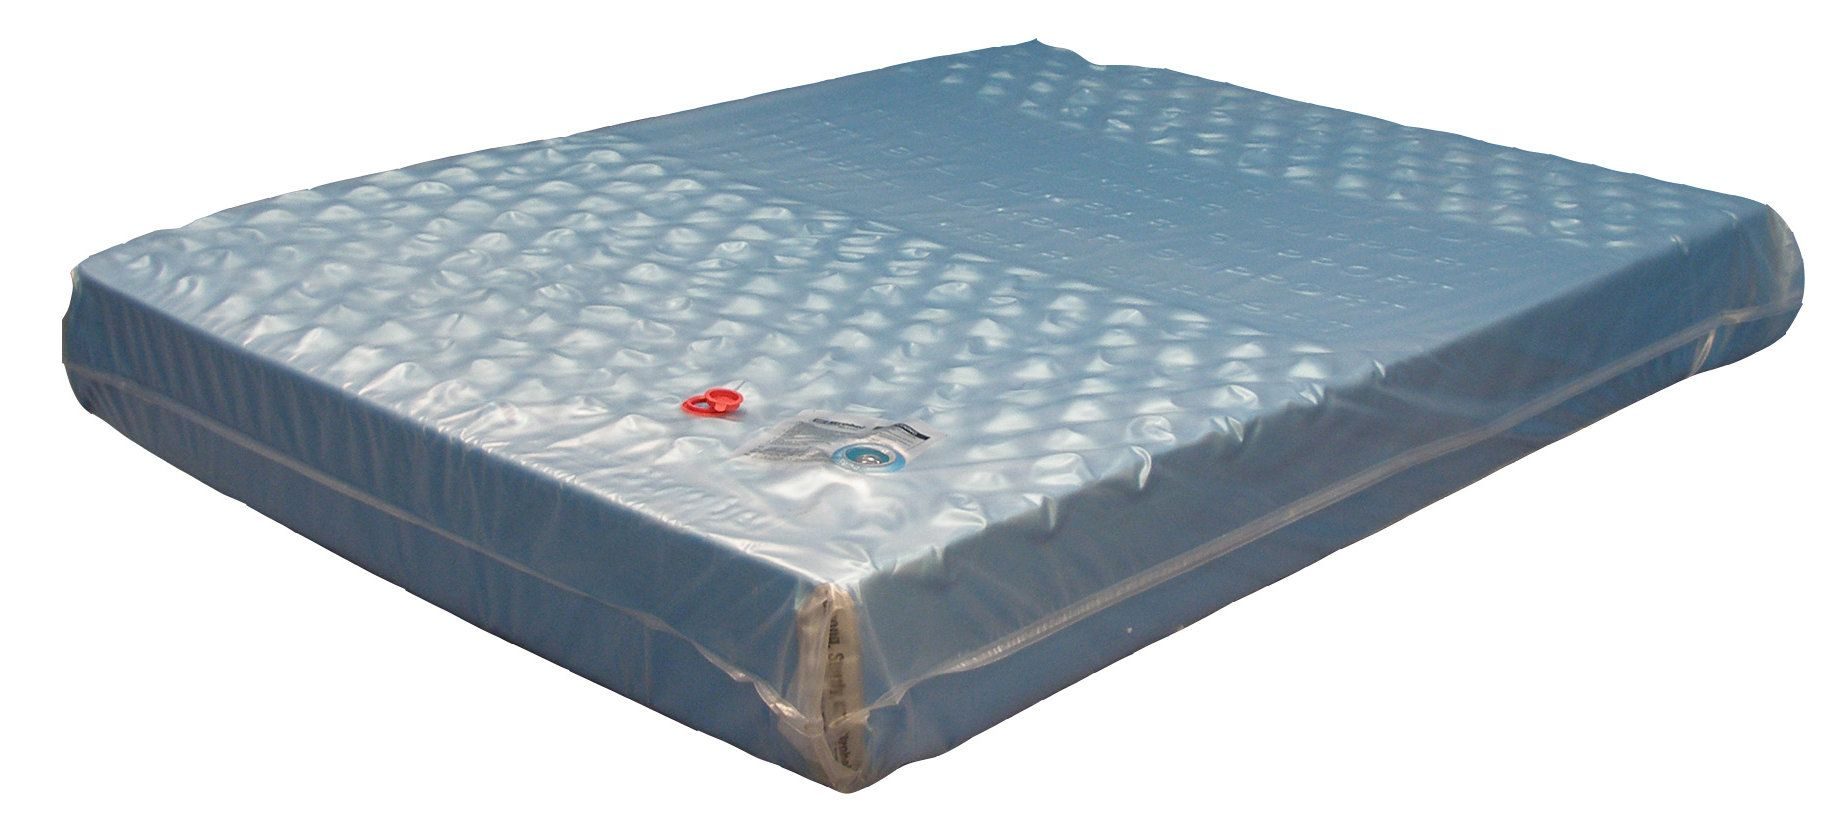 Winners Silver Charm 14 Soft Side Waterbed Mattress Water Bed Mattress Bed Frame Design